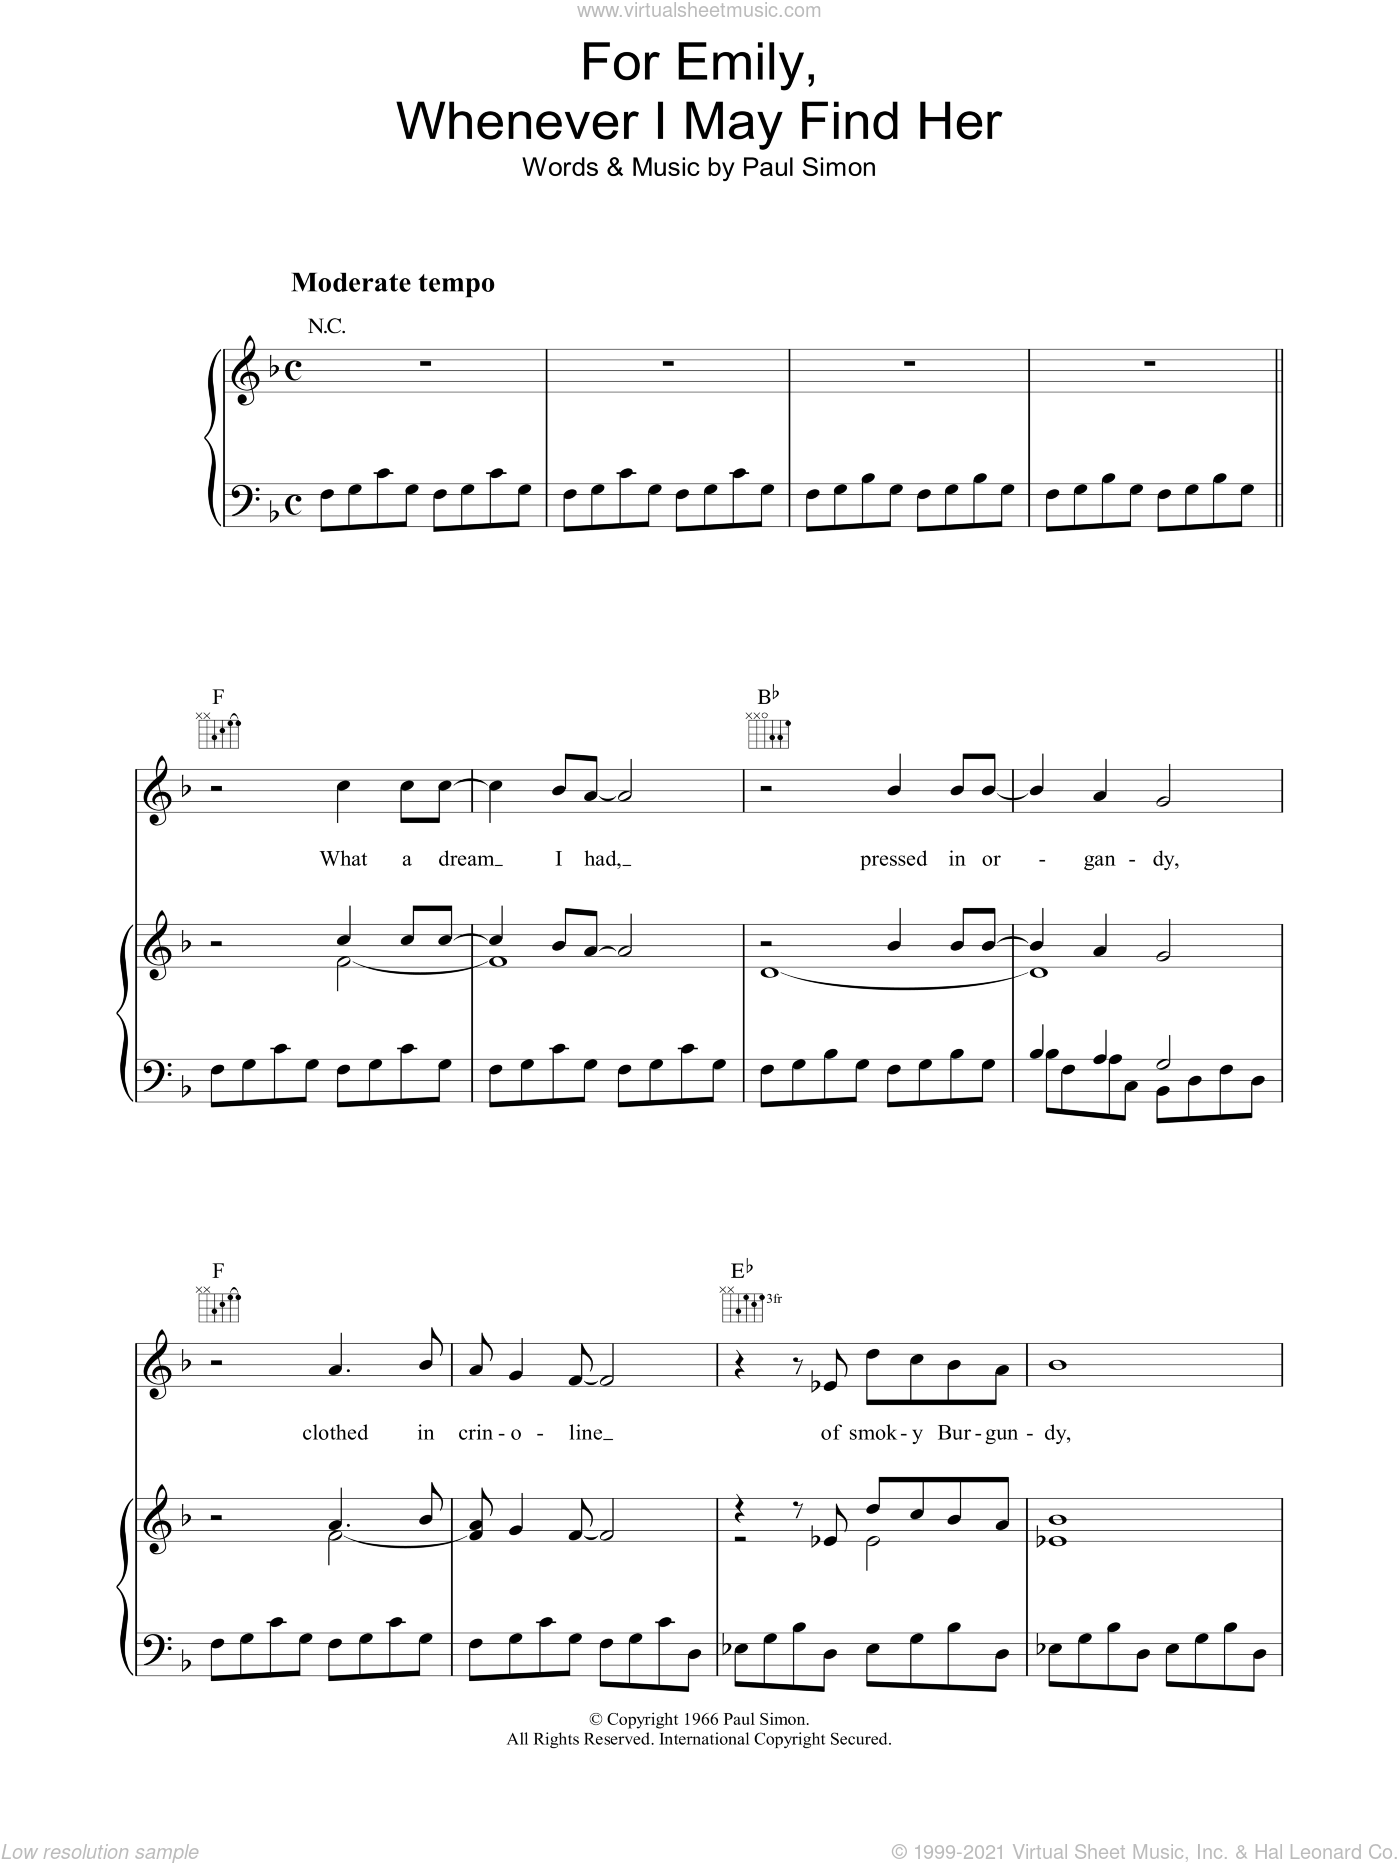 For Emily, Whenever I May Find Her sheet music for voice, piano or guitar by Paul Simon